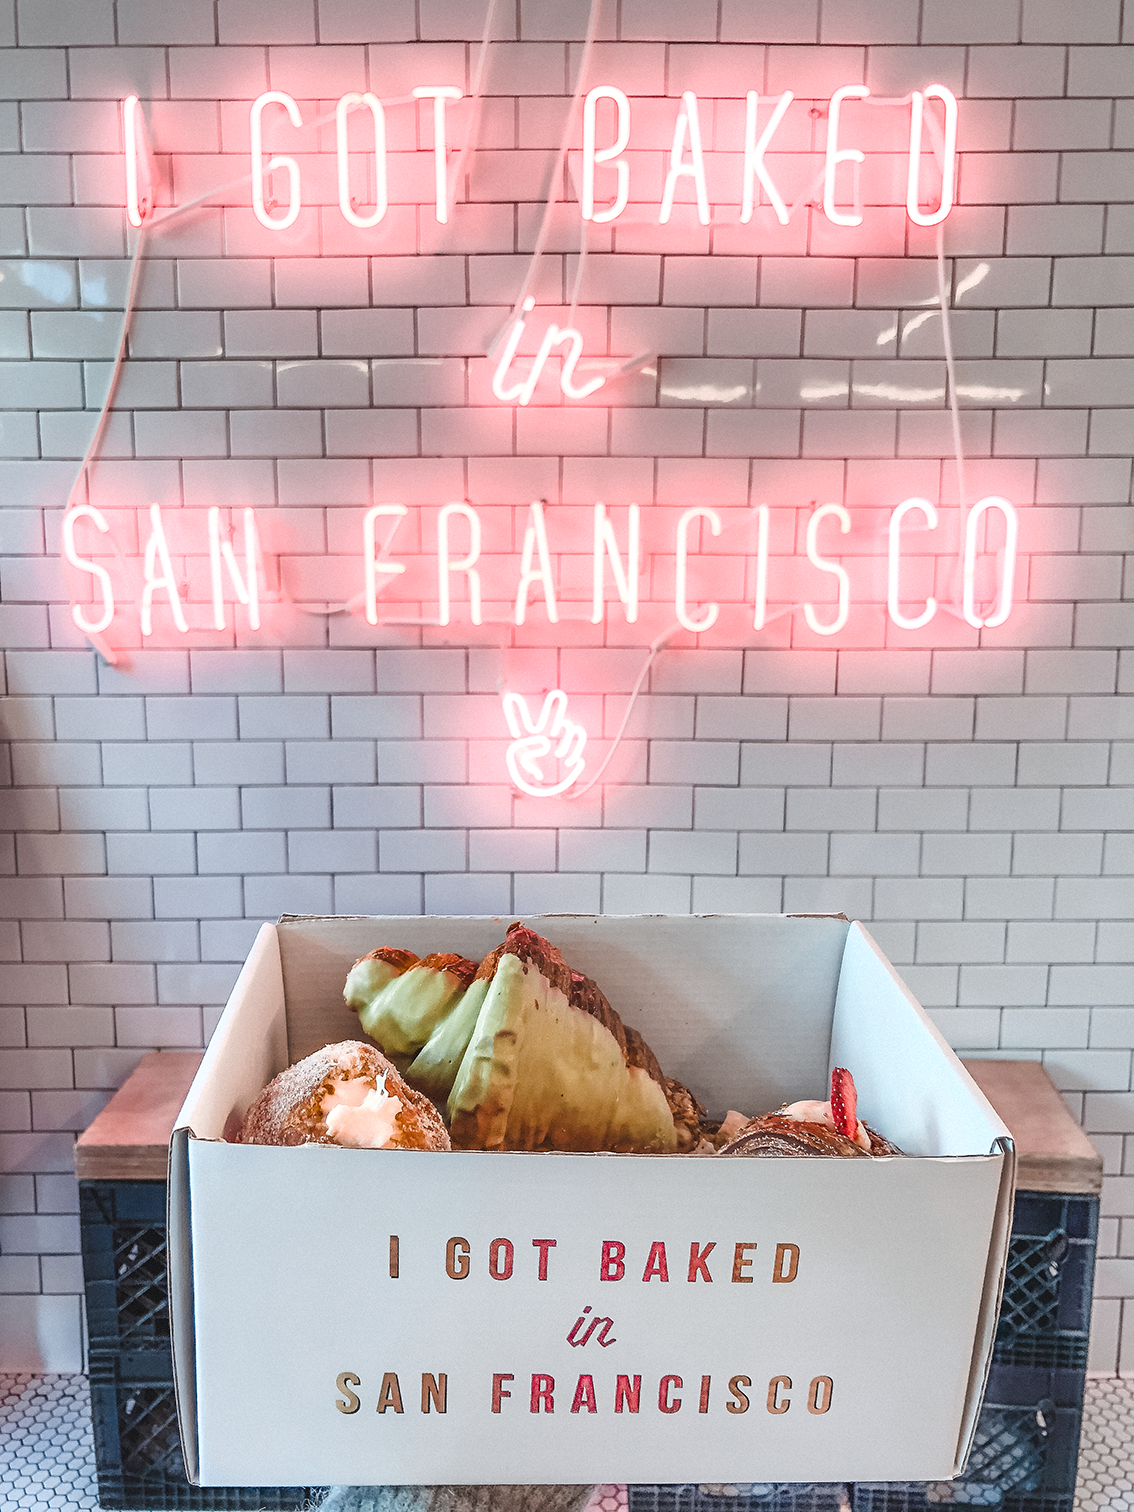 3 10 most instagrammable places in San Francisco you don't have to miss!